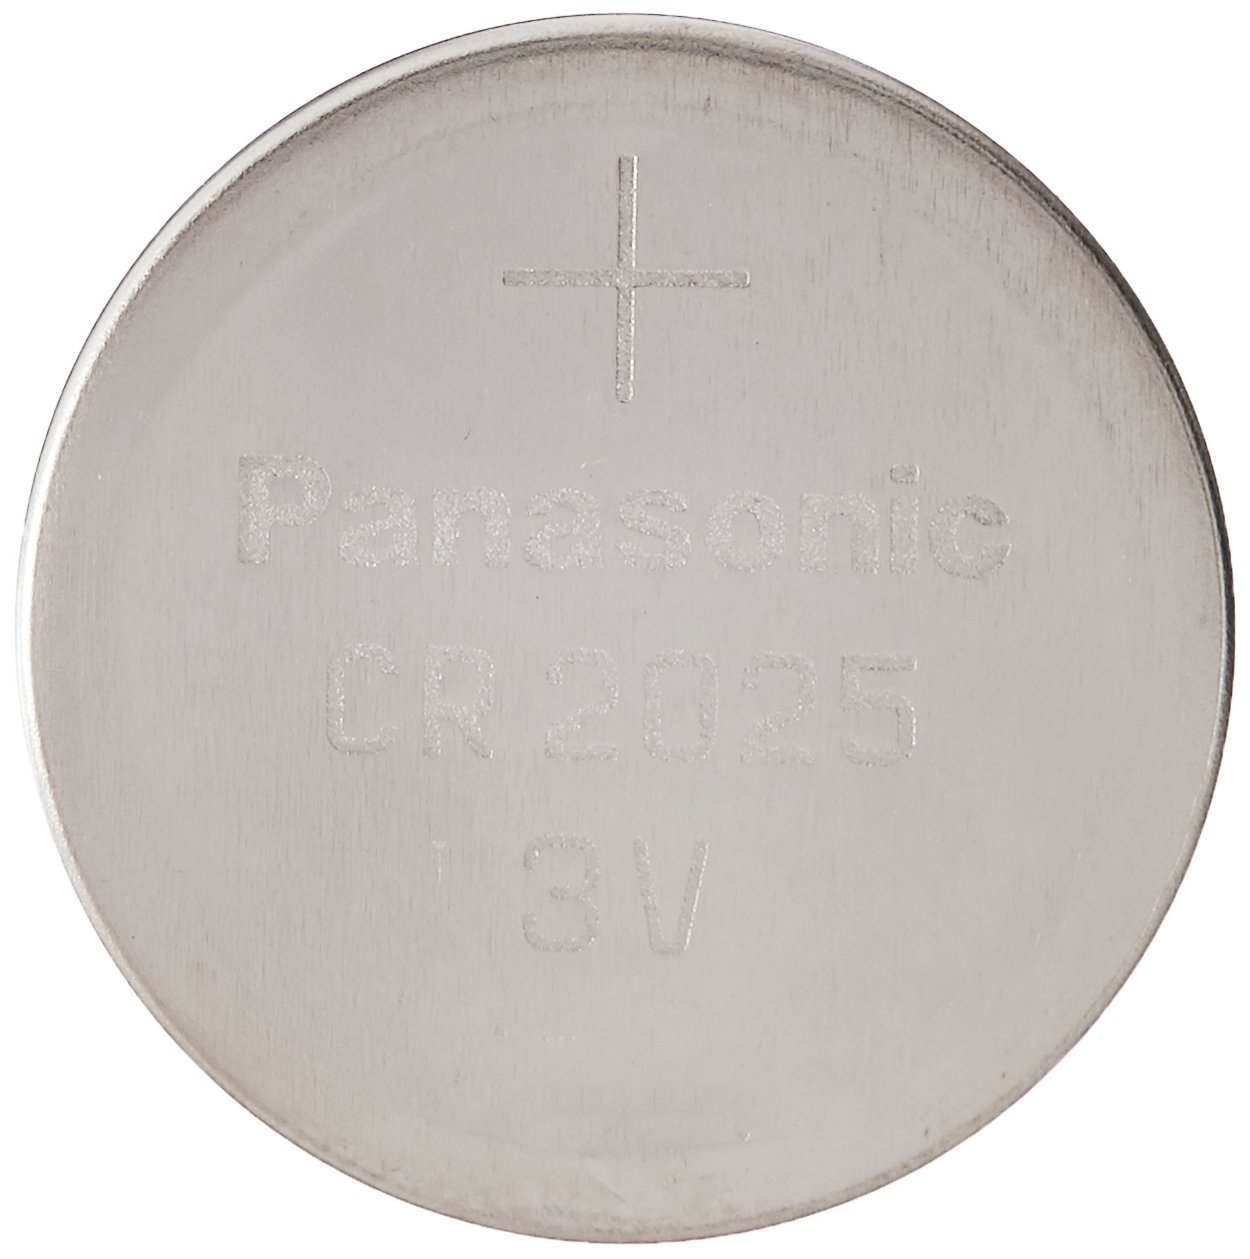 Panasonic CR2025-4 CR2025 3V Lithium Coin Battery (Pack of 4)